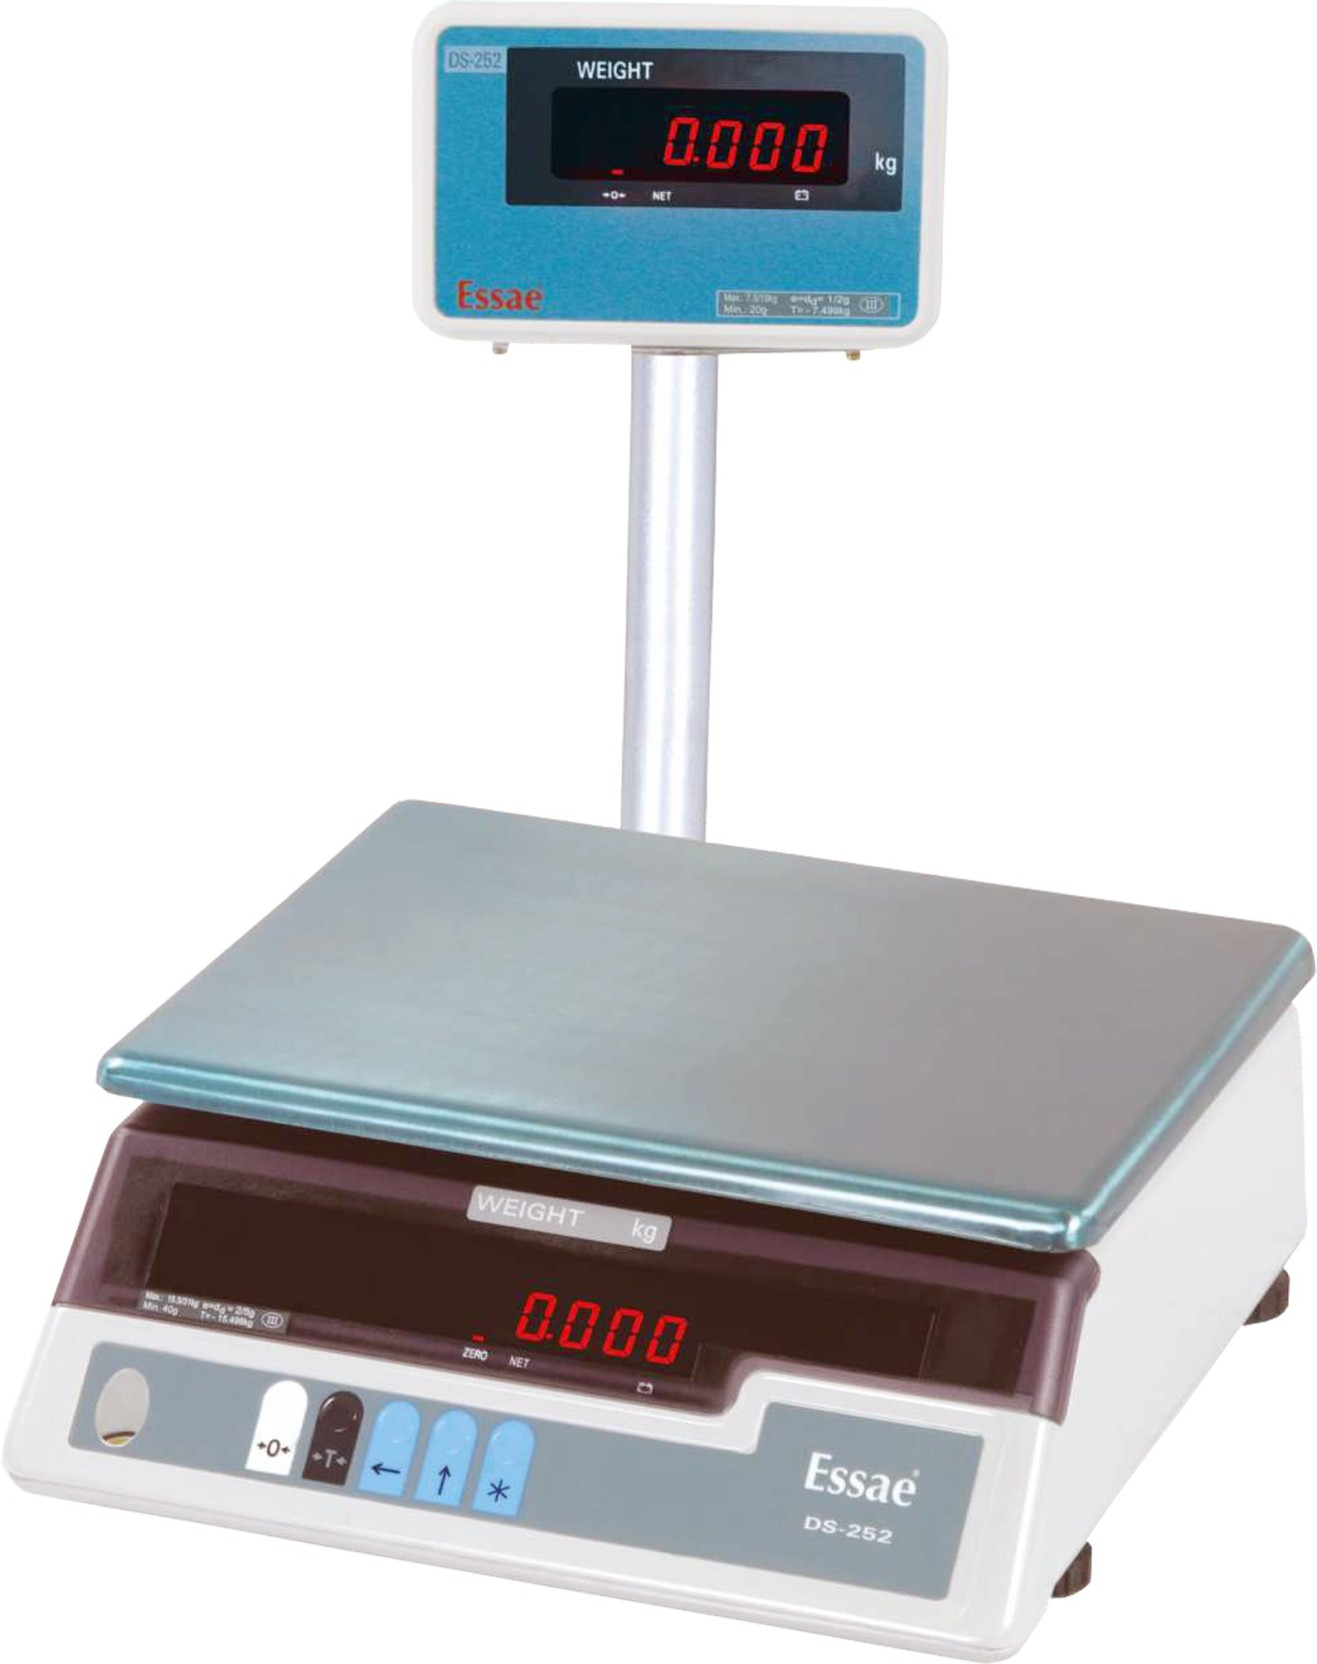 Essae Table Top Weighing Scale Price in India - Buy Essae Table Top ...